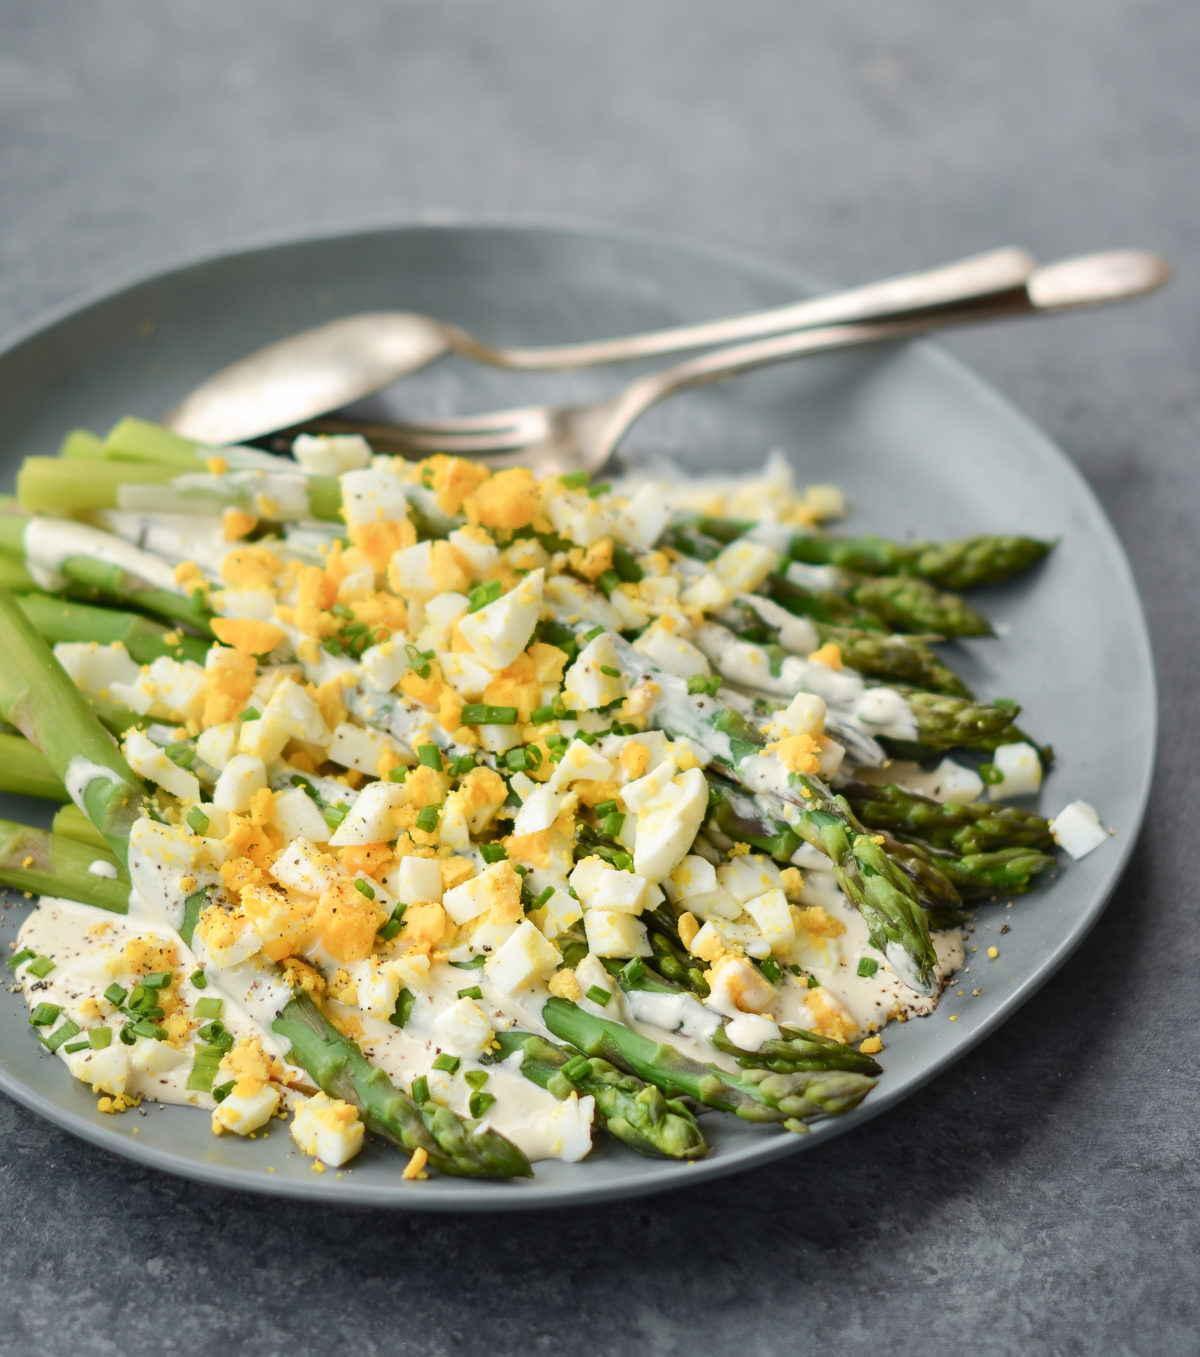 Asparagus Salad with Hard Boiled Eggs and Creamy Dijon Dressing